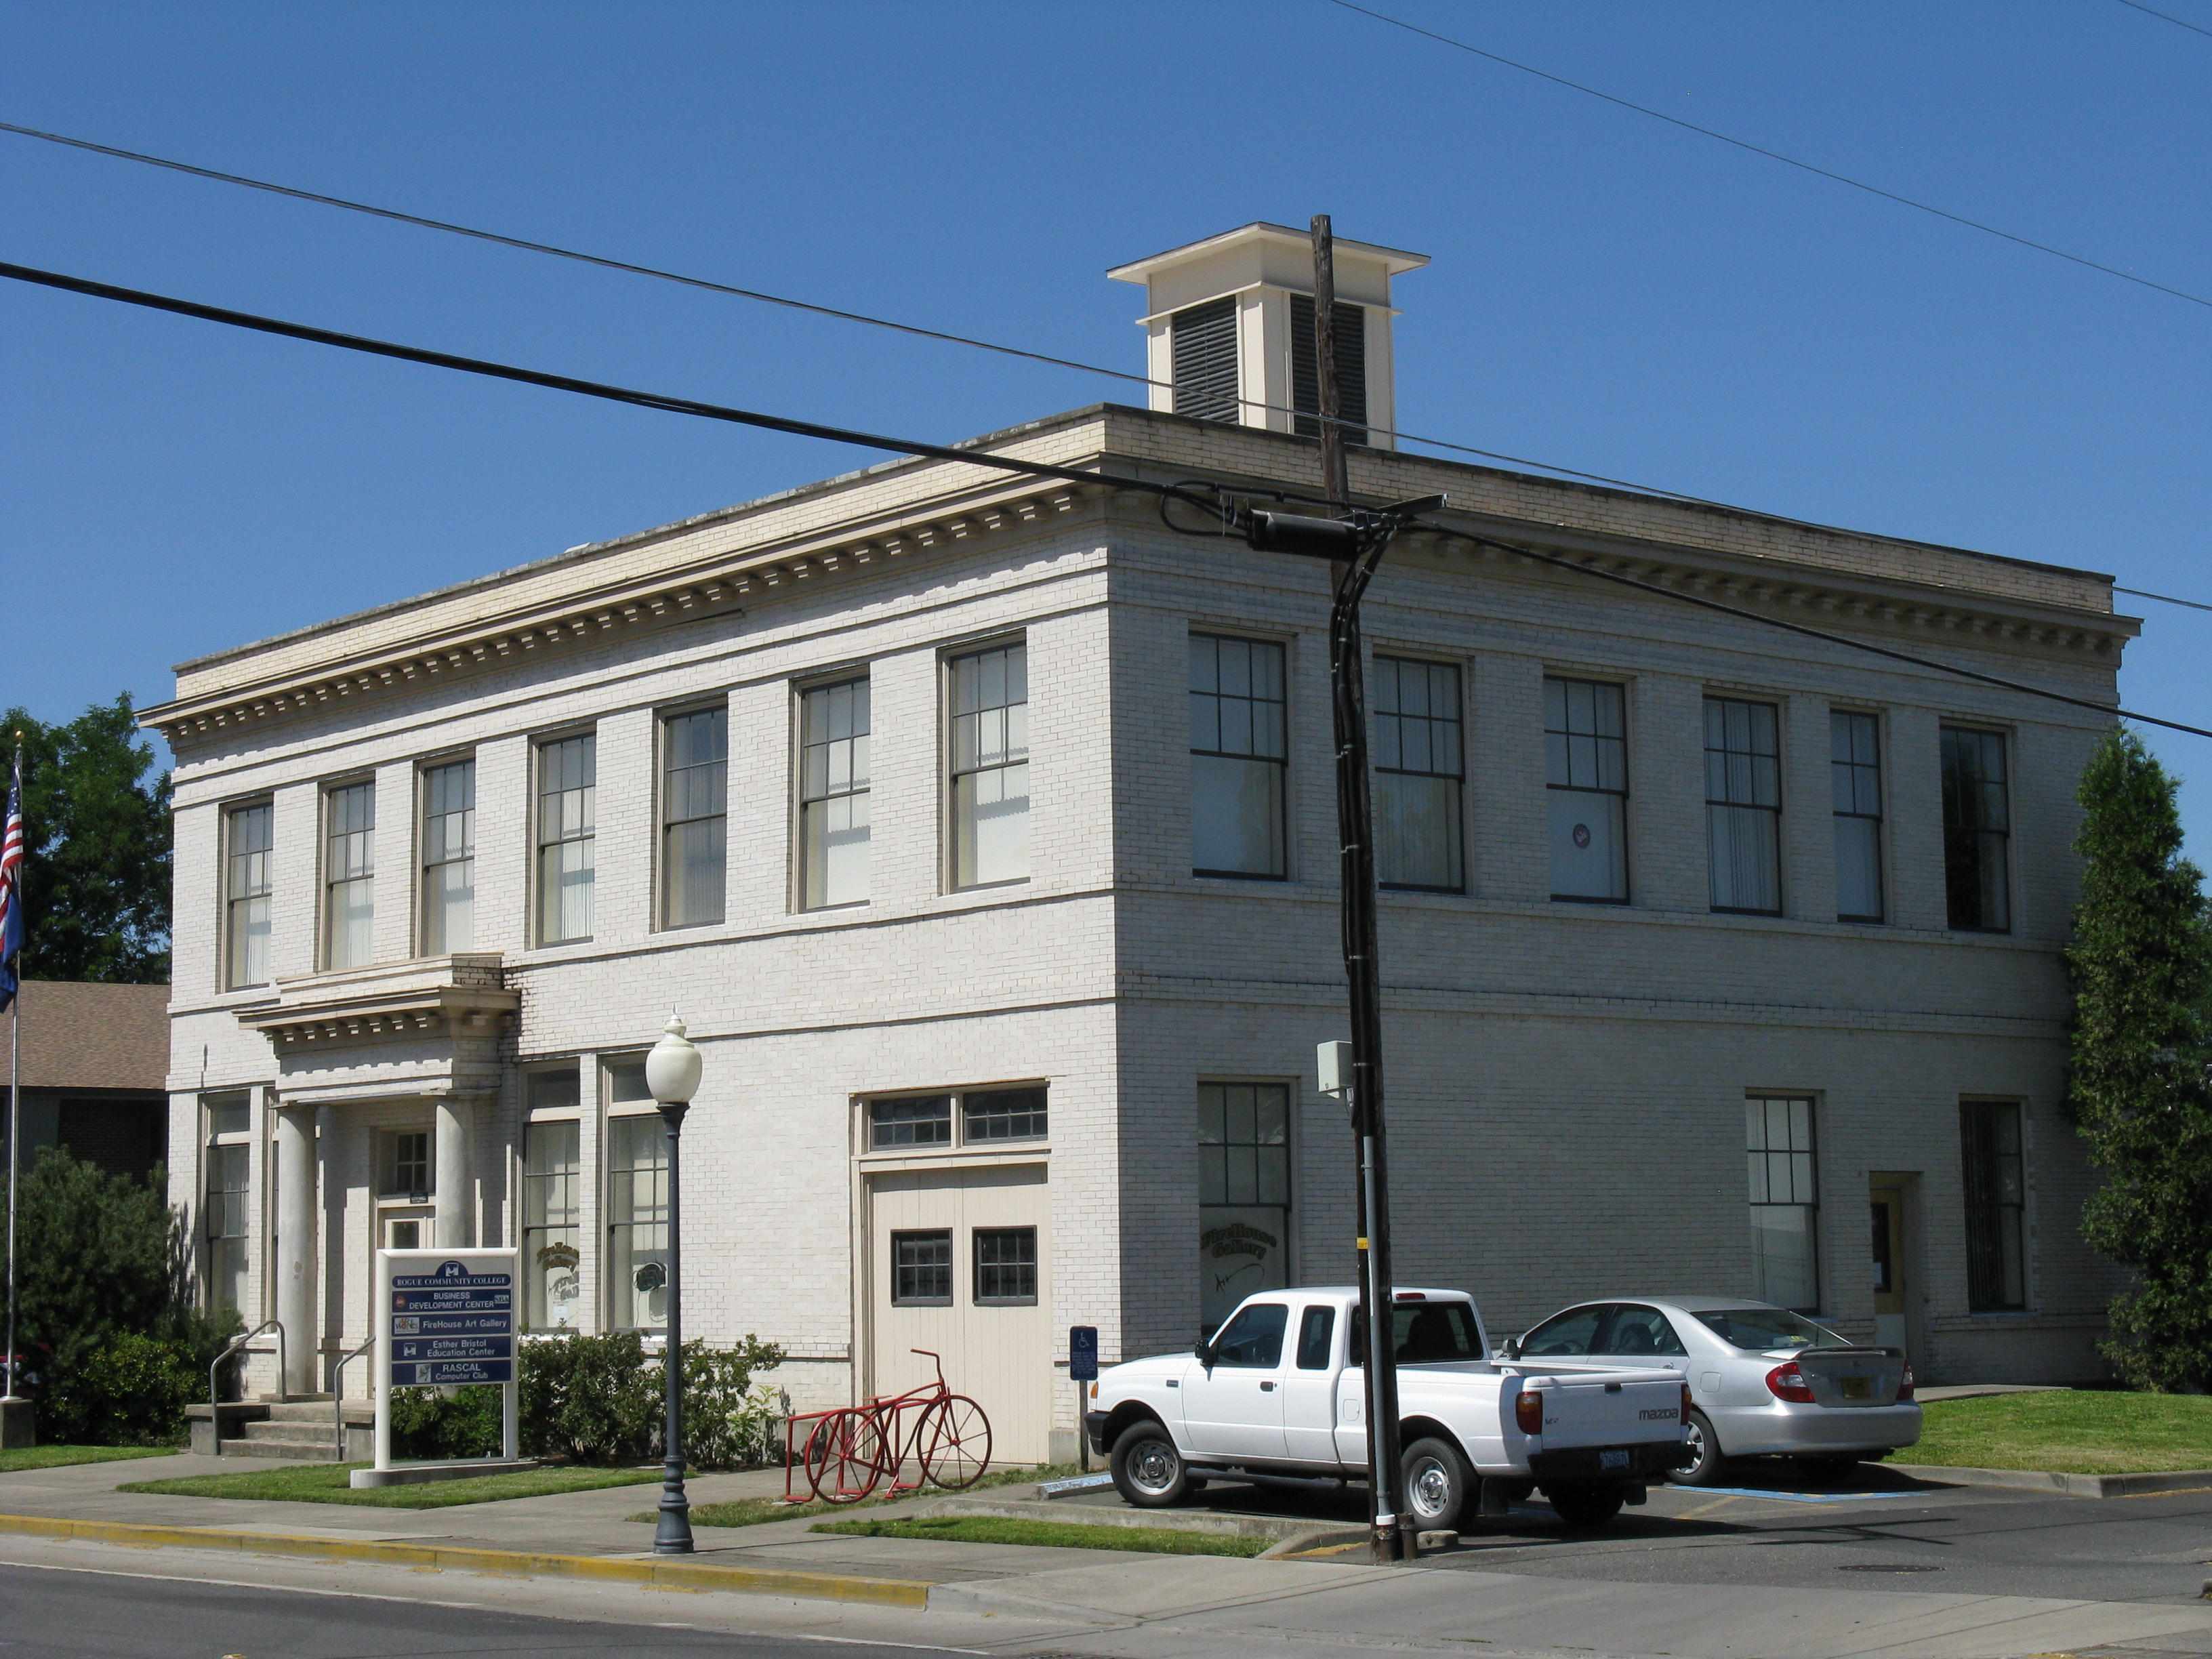 File:Old City Hall - Grantsgrants city